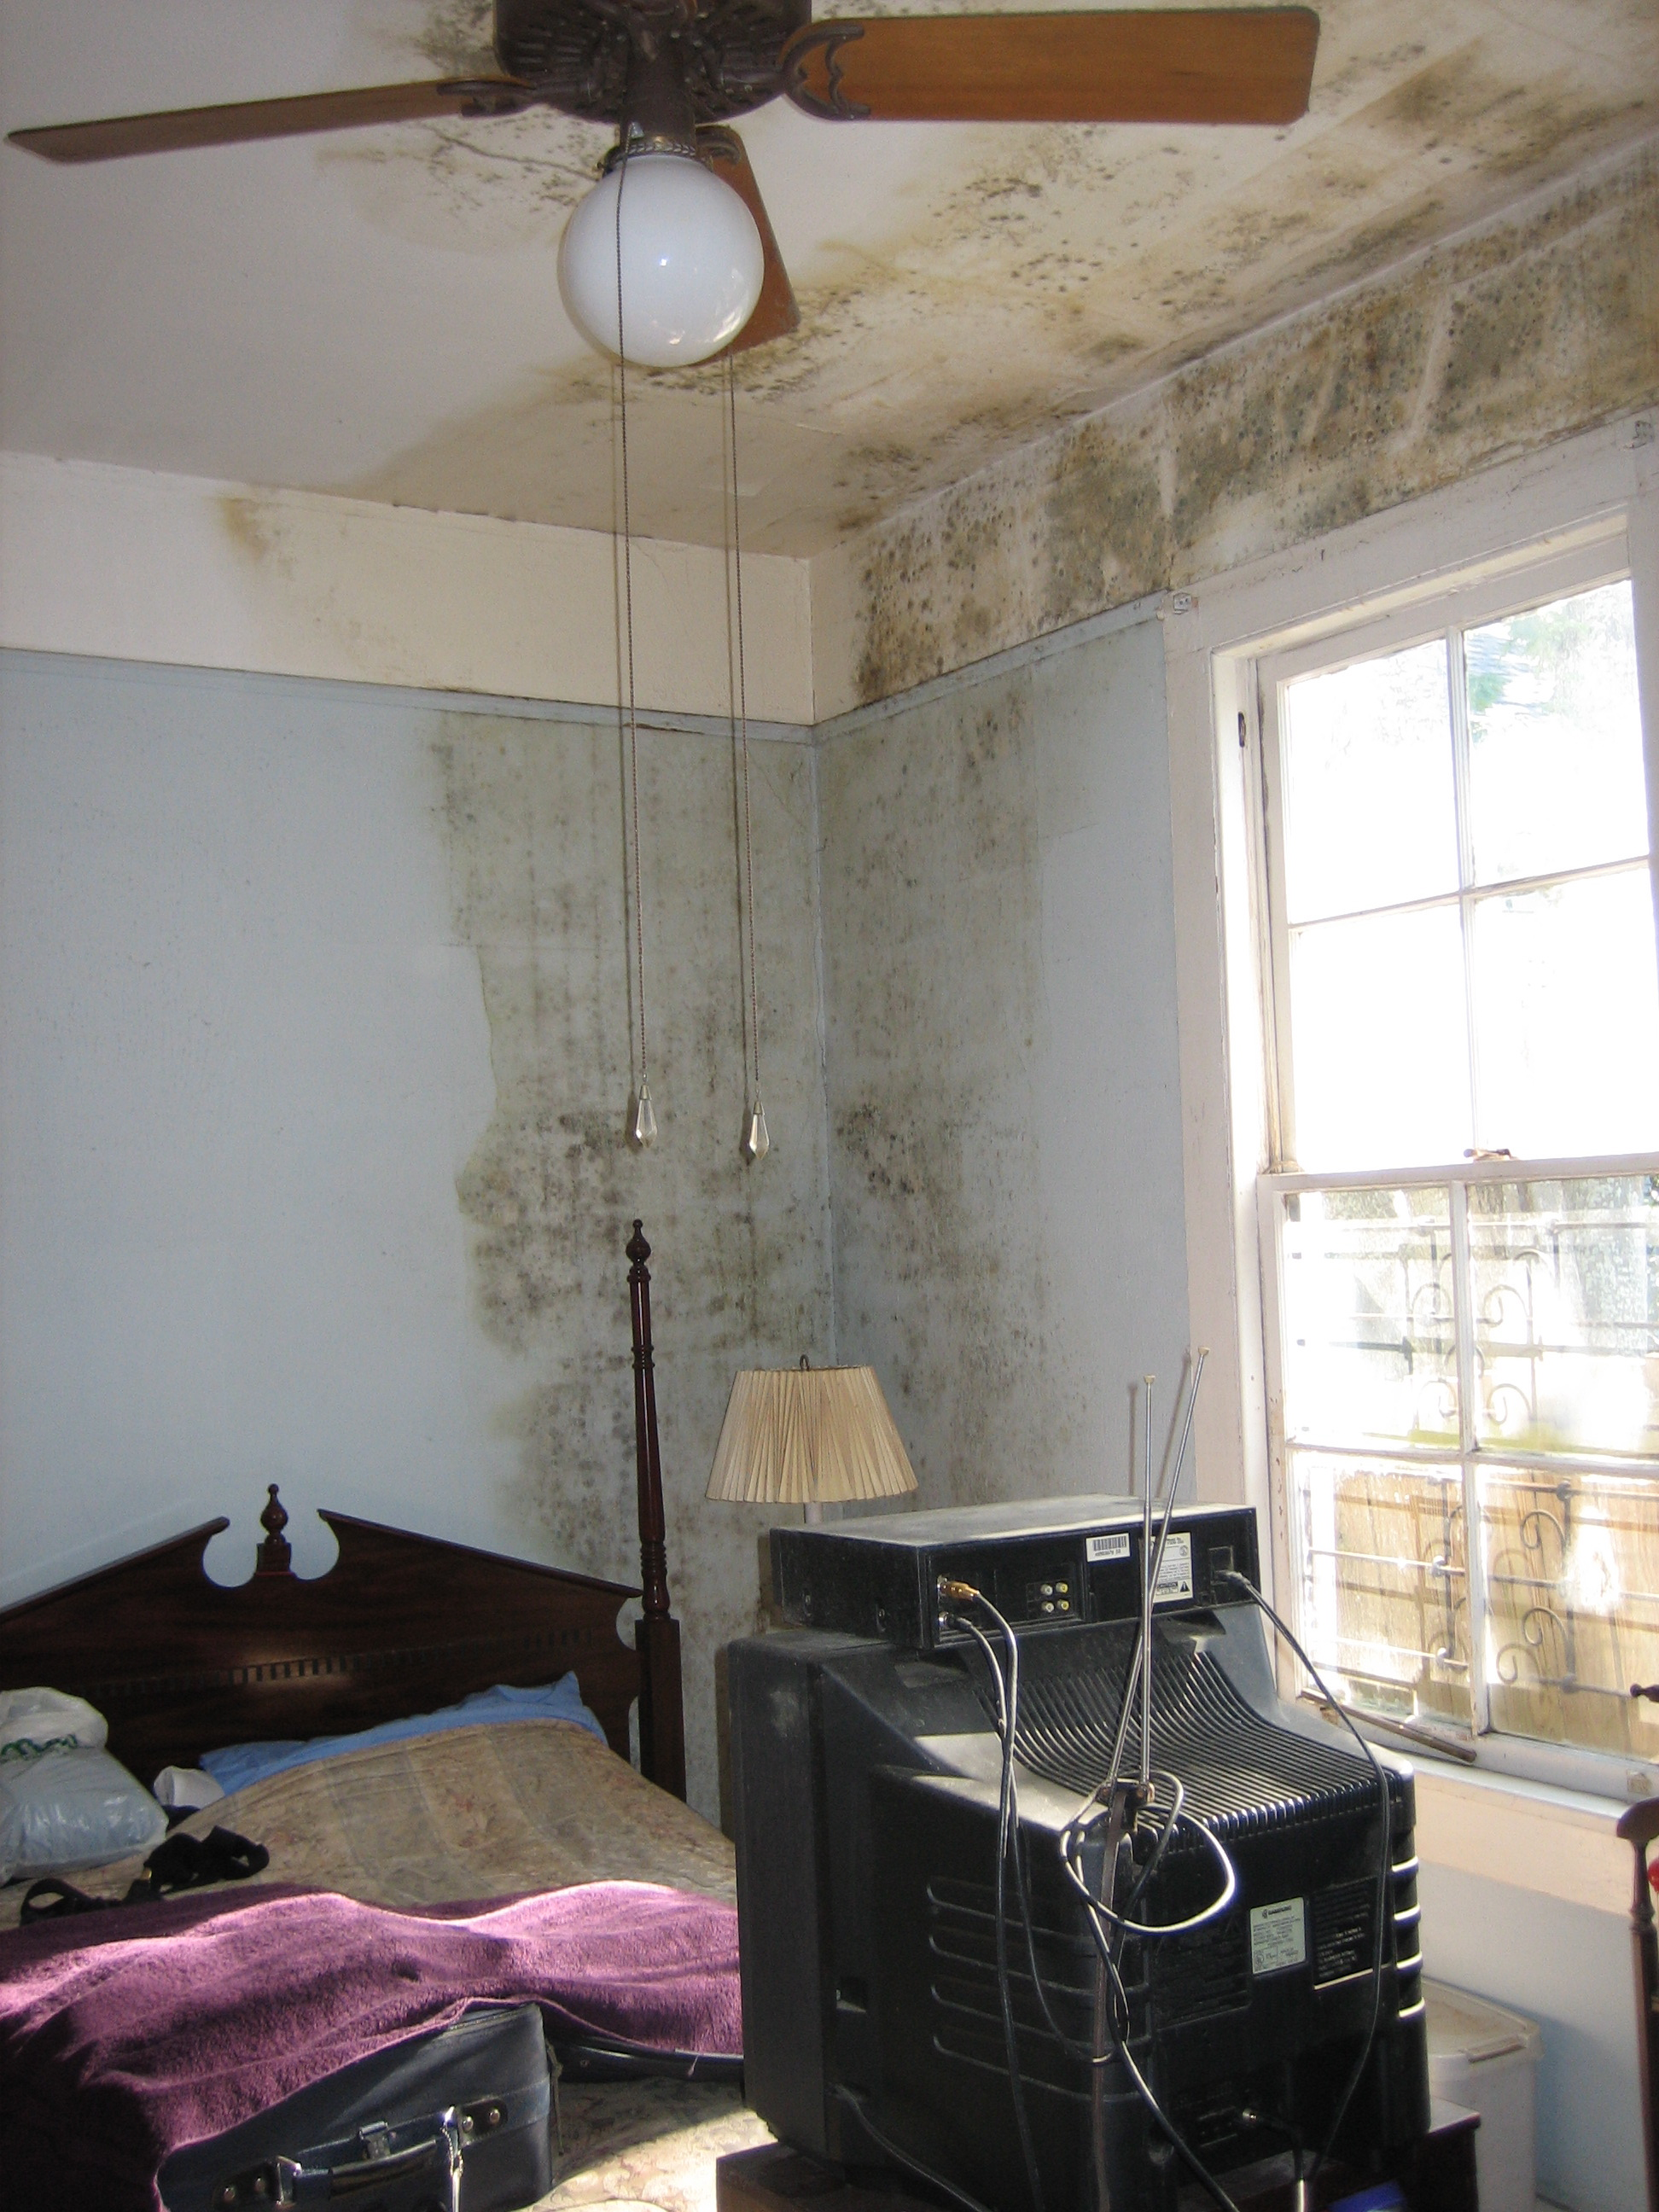 Symptoms Of Mold In The House: How To Detect It